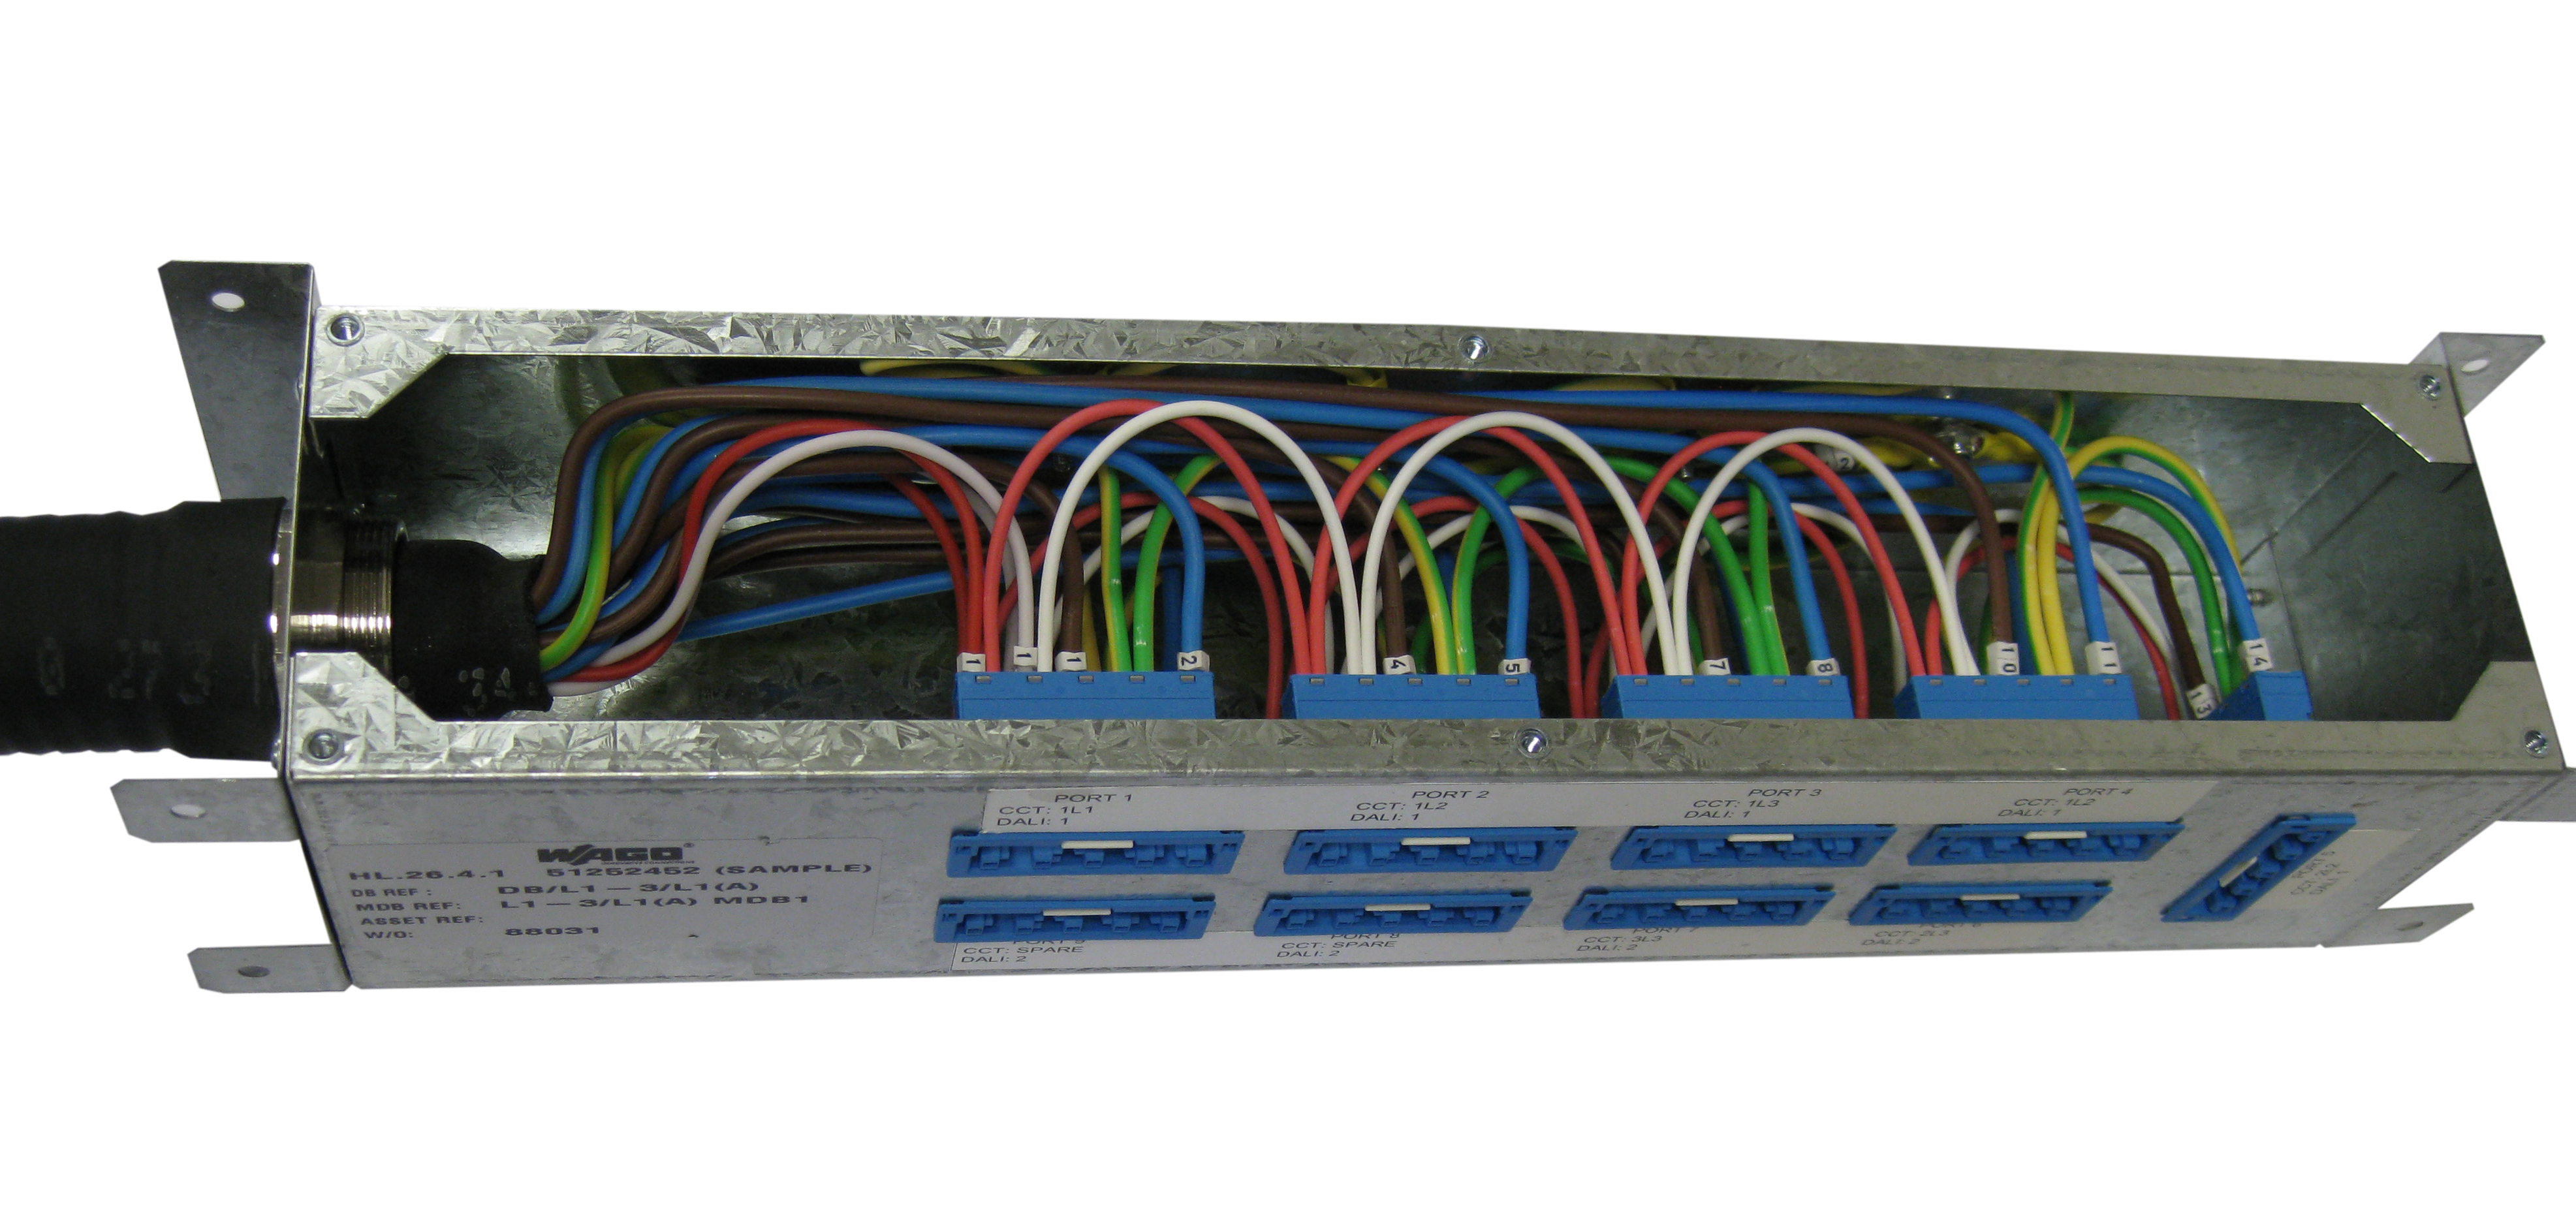 Myth Busters Modular Wiring Professional Electrician Home Run Cable More Information On Wagos Winsta Connection System Visit Http Globalwagocom Uk